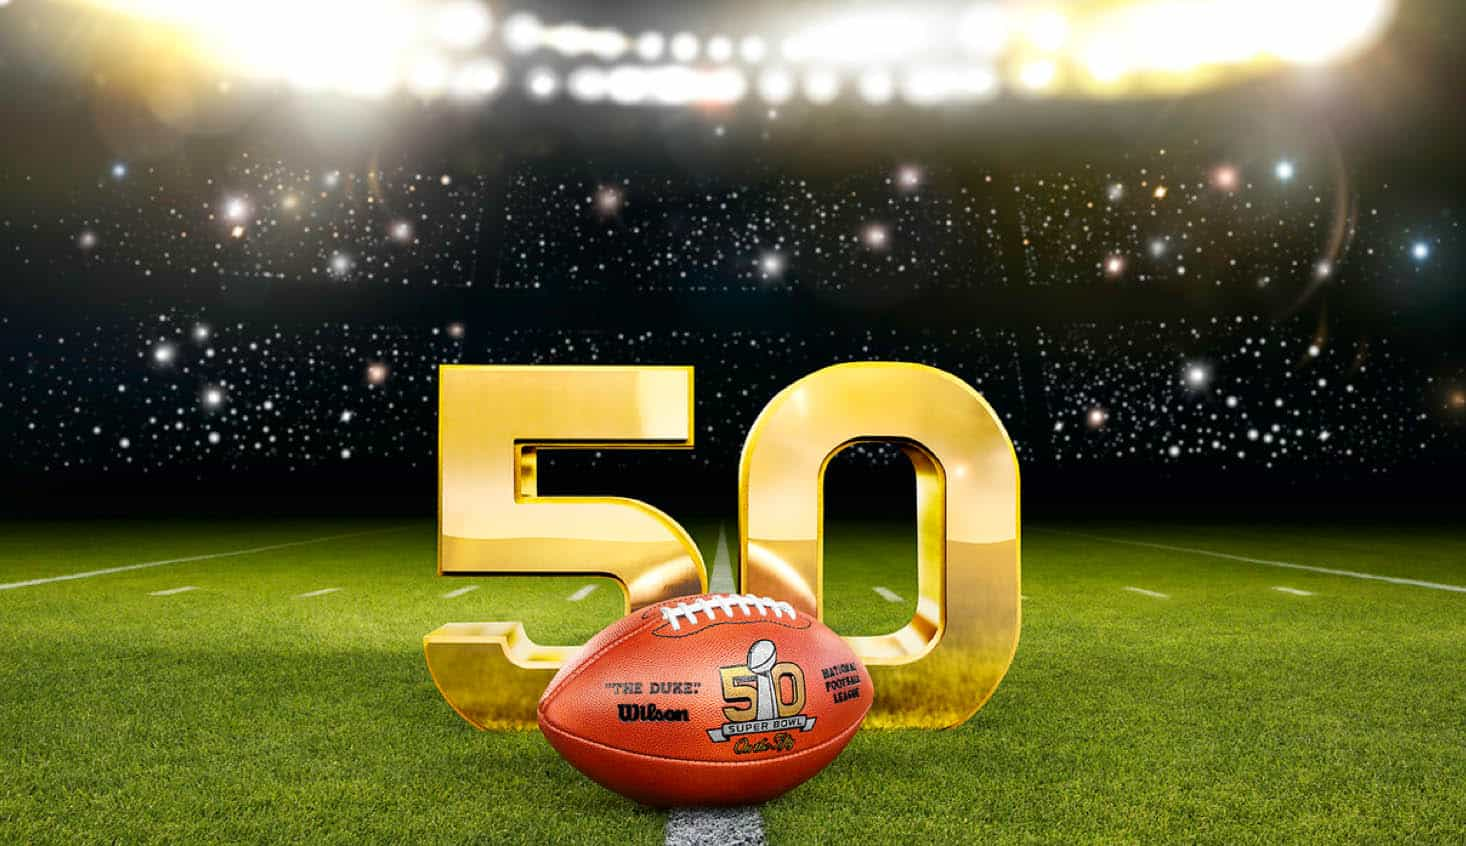 The Ads of Super Bowl 50 – Who scored and who fumbled?